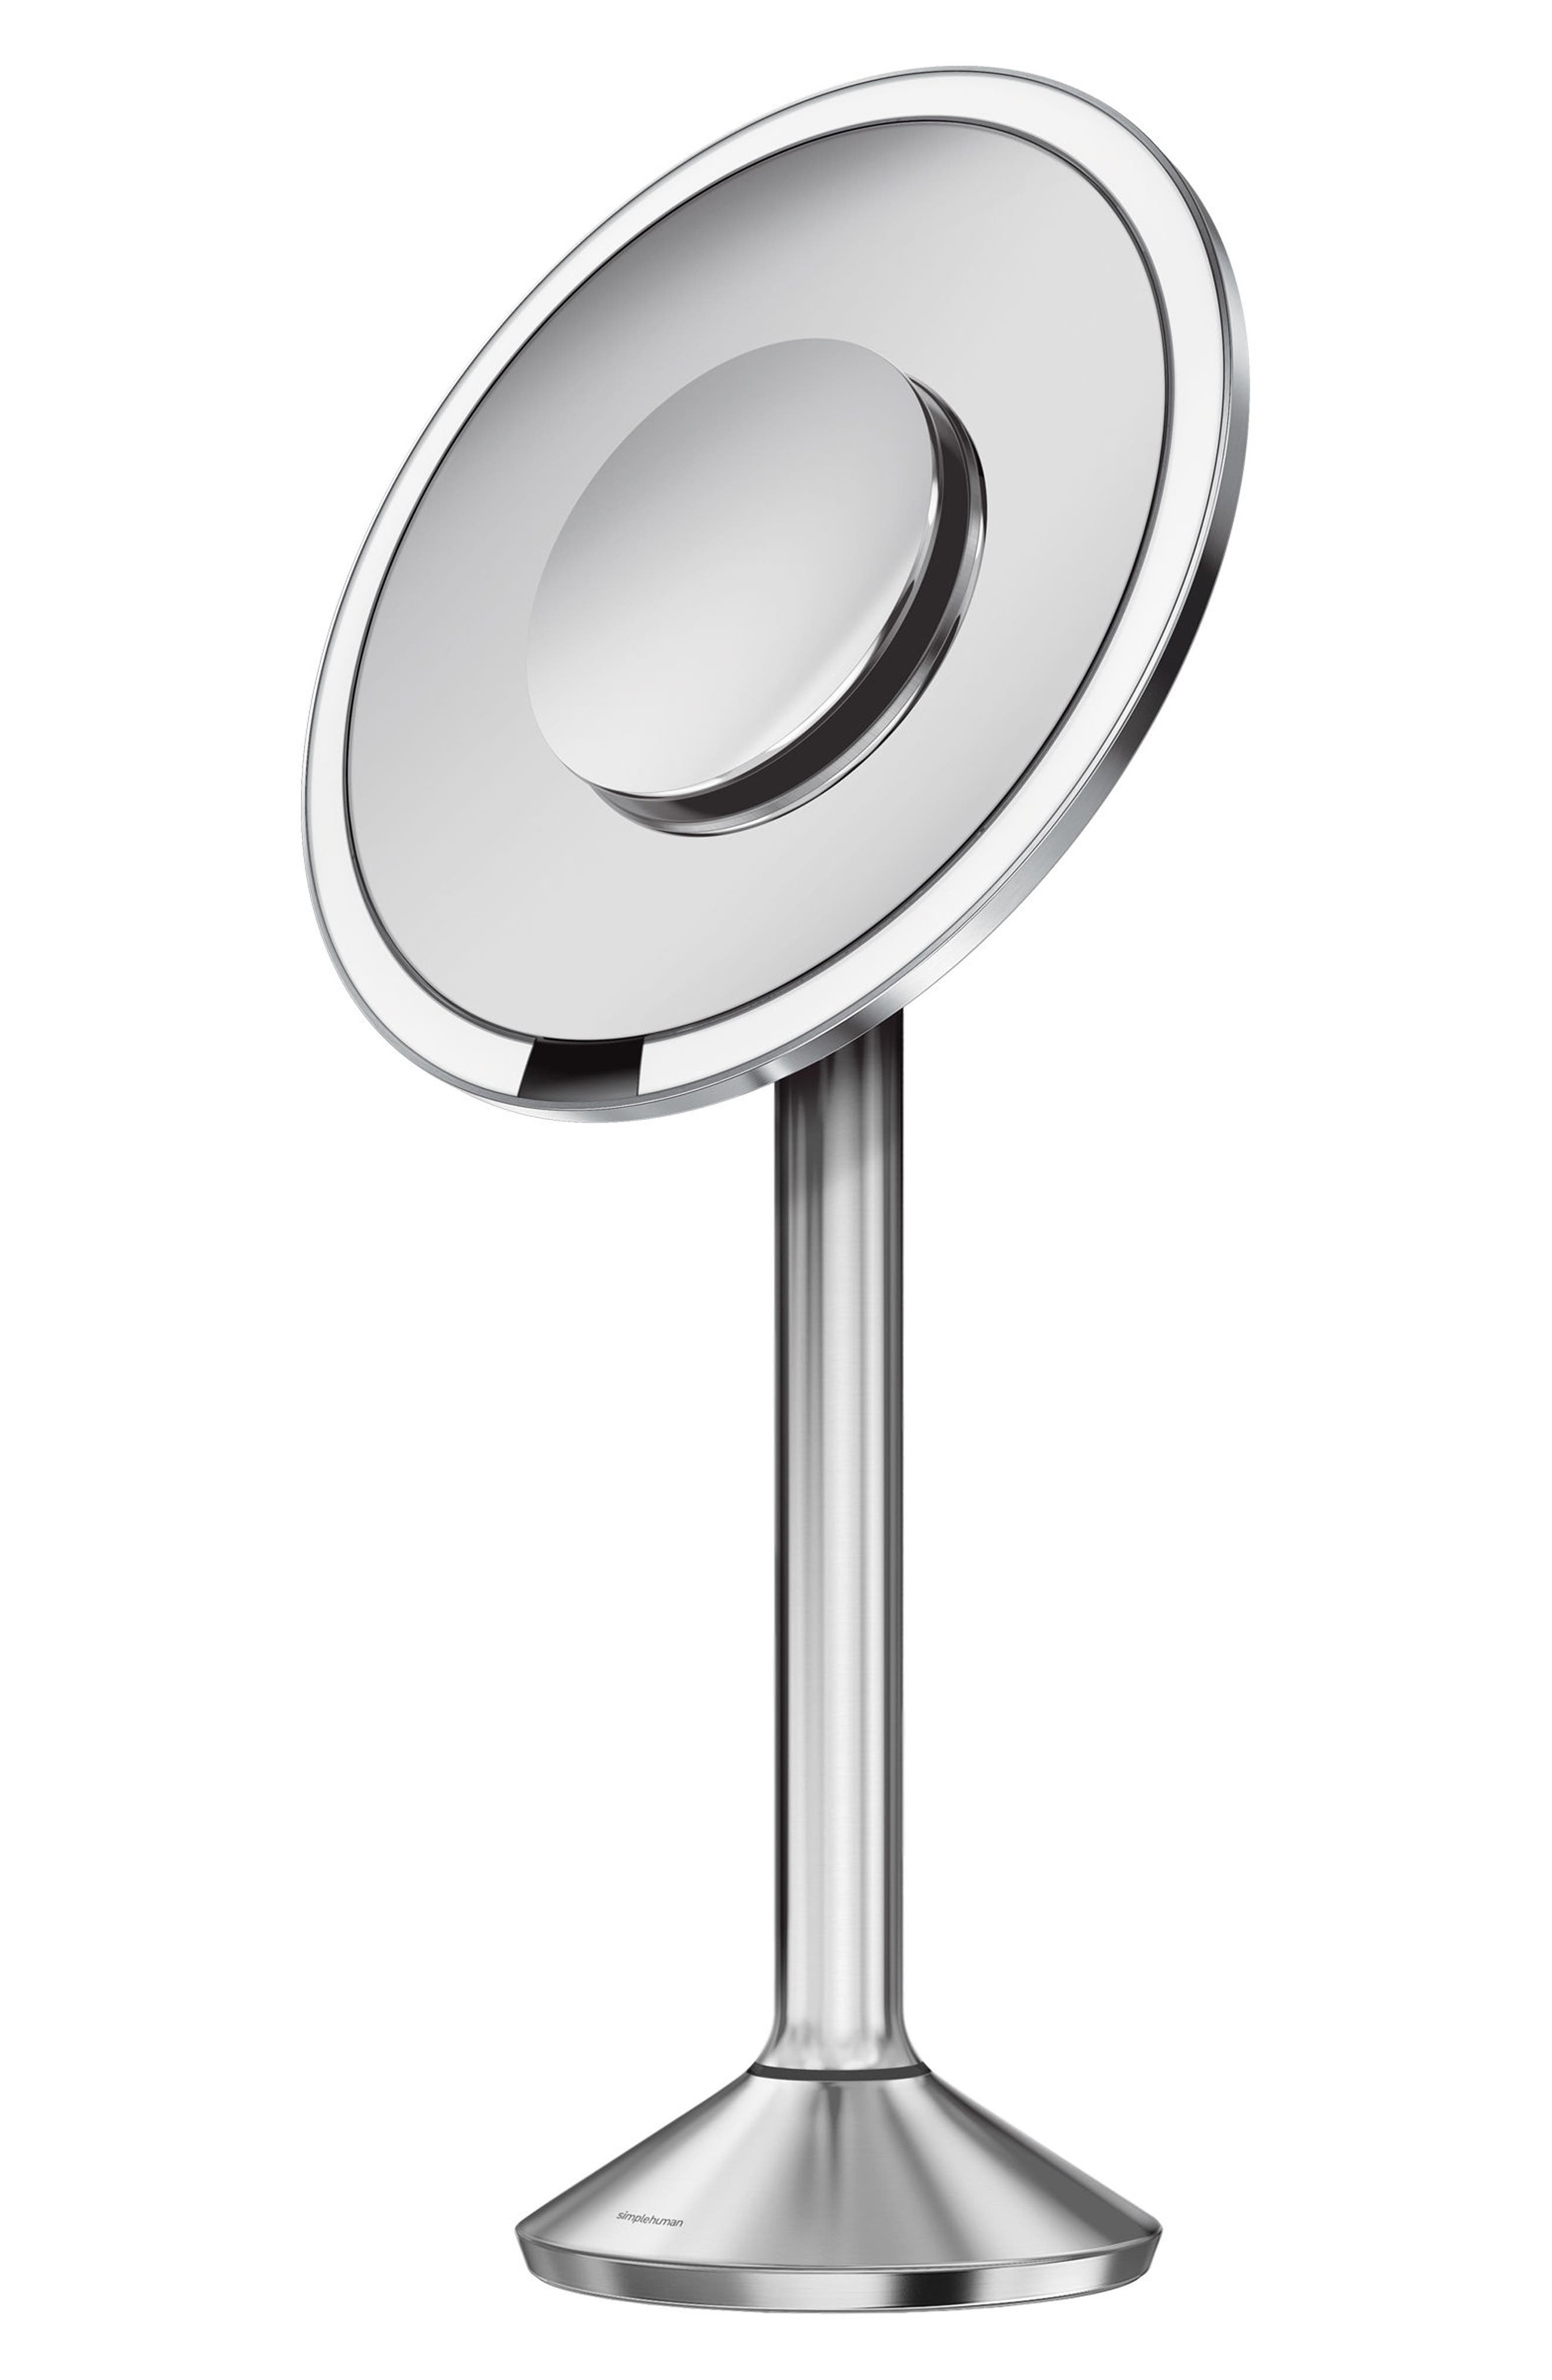 Round Sensor Mirror Pro,                             Main thumbnail 1, color,                             Stainless Steel